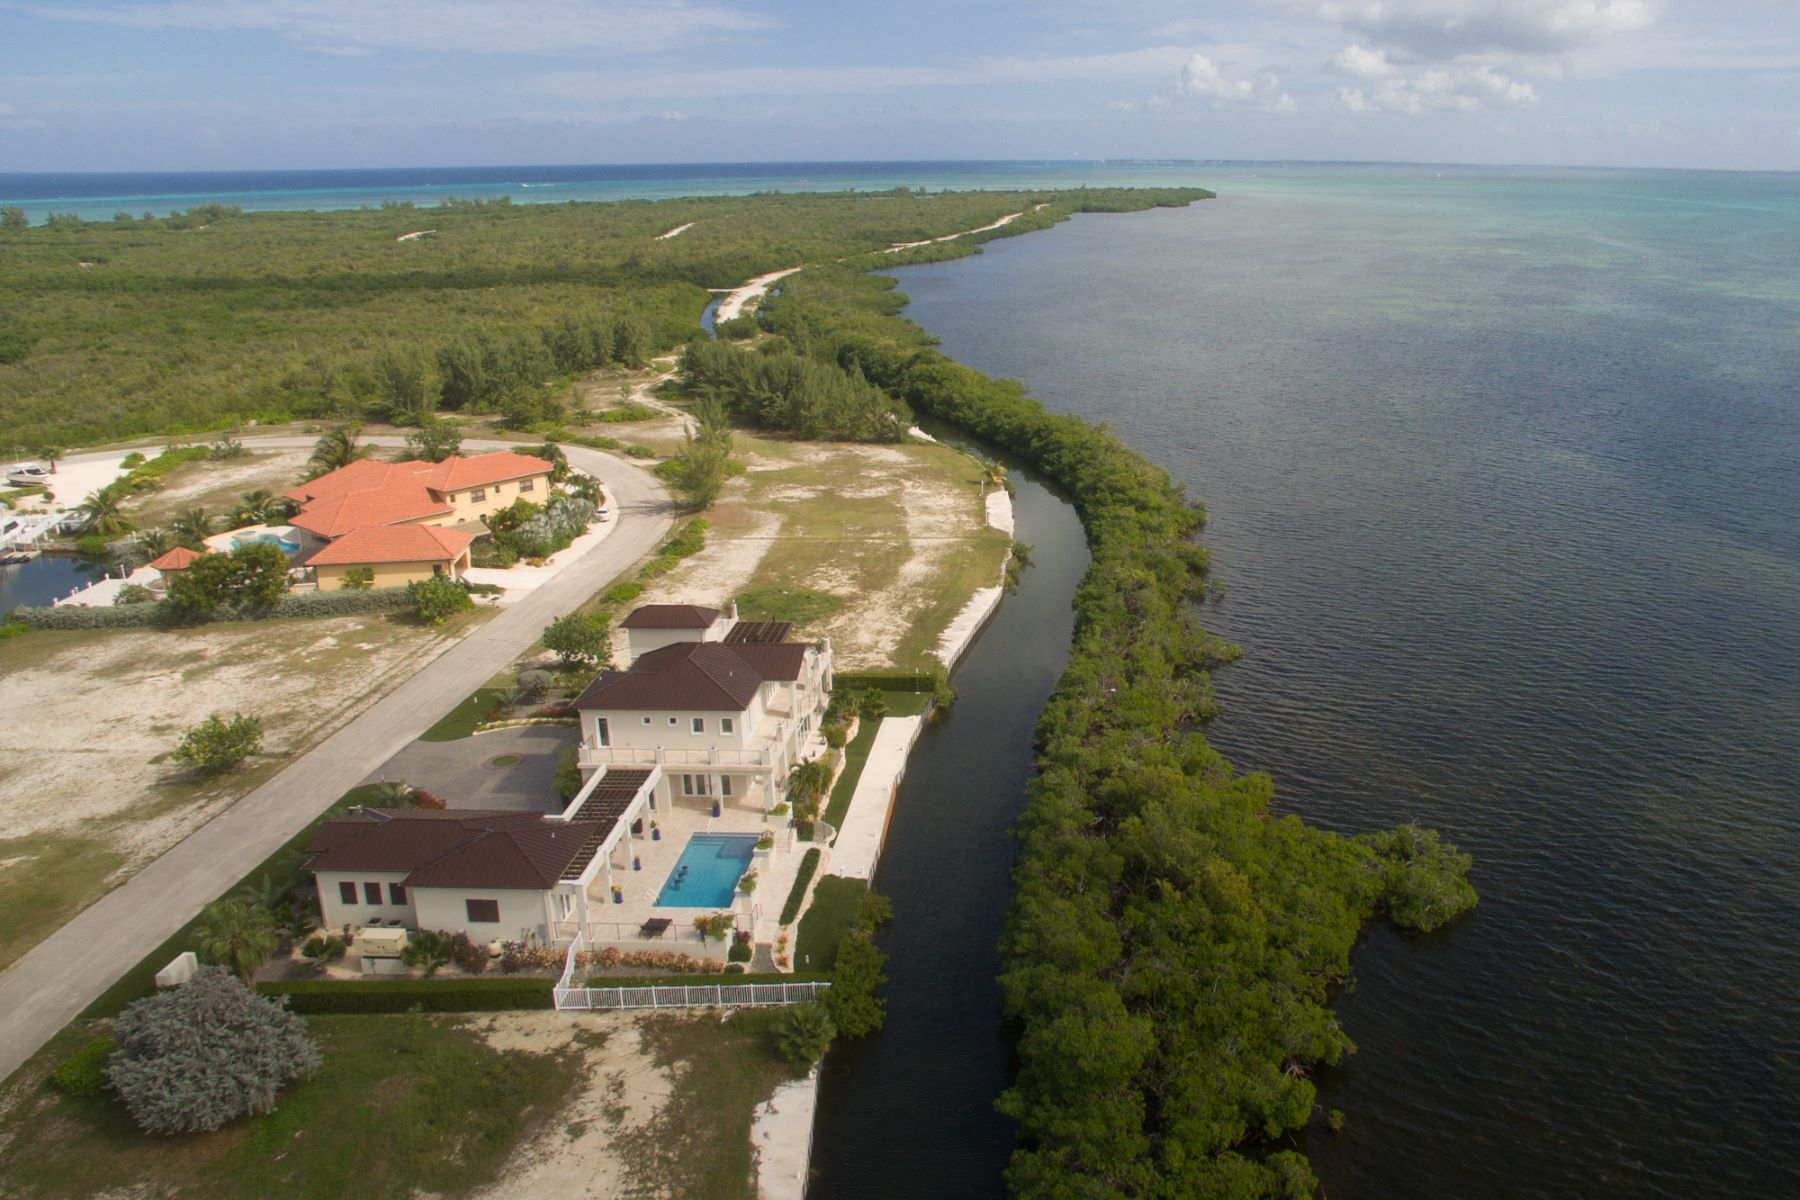 Single Family Home for Sale at Excalibur Shorewinds Trail 463 The Shores West Bay, KY1 Cayman Islands